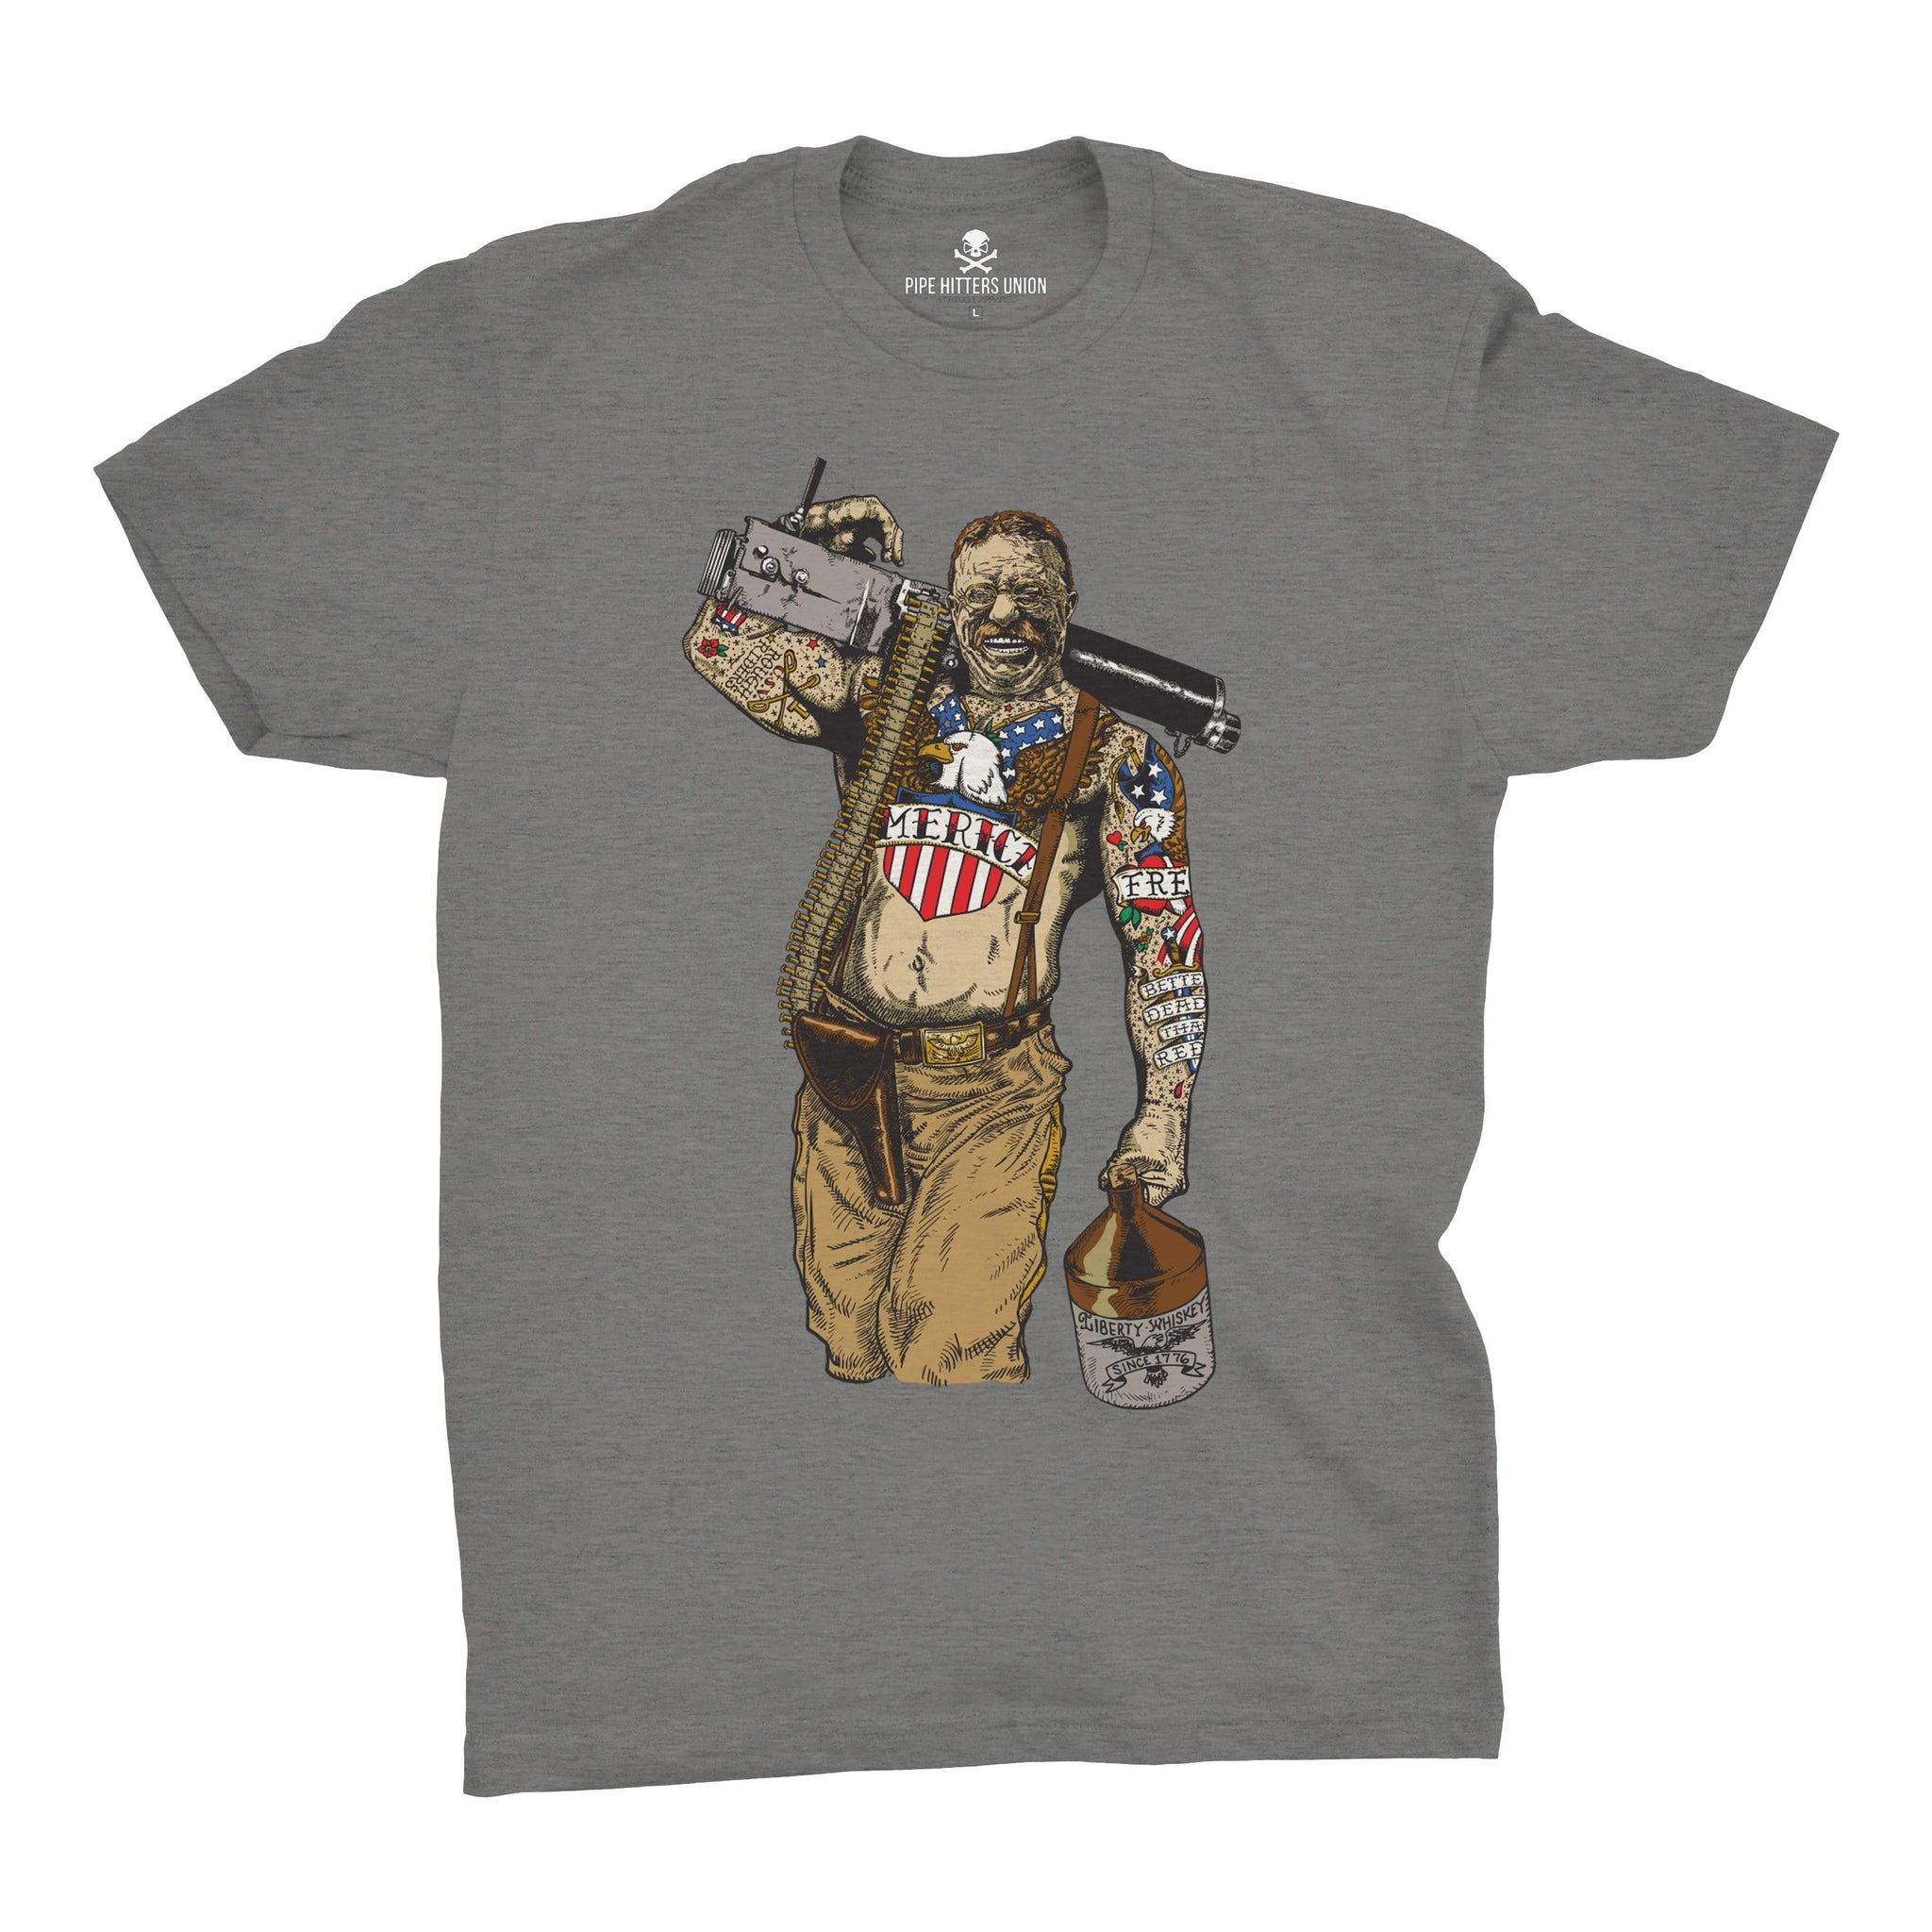 Original Pipe Hitter - Teddy - Grey - T-Shirts - Pipe Hitters Union